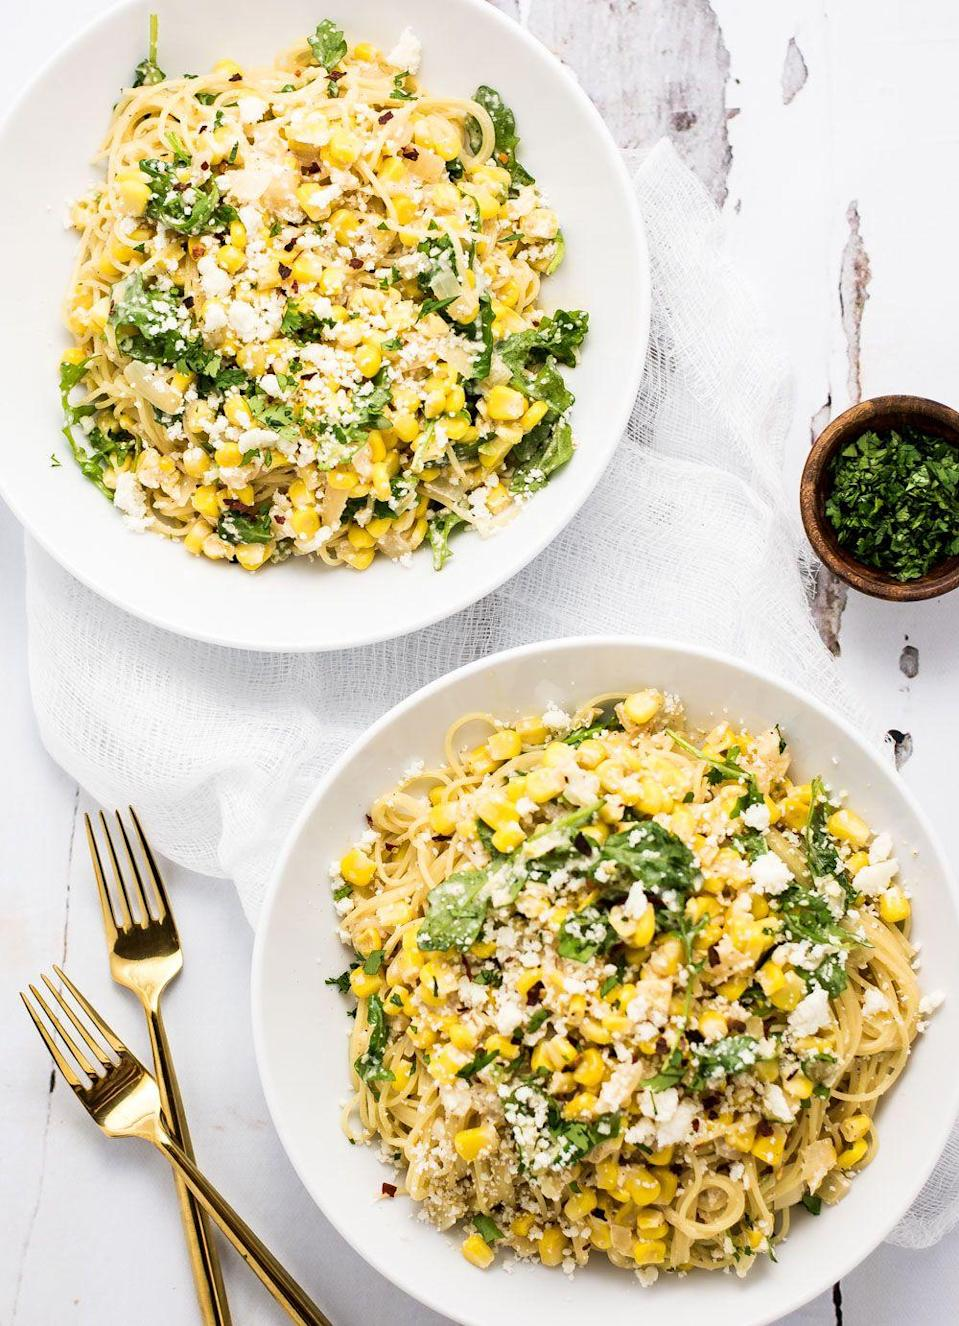 """<p>Crumbled Cojita cheese gives this pasta recipe a truly signature taste.</p><p><strong>Get the recipe at <a href=""""http://cookingandbeer.com/2016/05/mexican-corn-pasta/"""" rel=""""nofollow noopener"""" target=""""_blank"""" data-ylk=""""slk:Cooking and Beer"""" class=""""link rapid-noclick-resp"""">Cooking and Beer</a>.</strong></p><p><strong><strong><a class=""""link rapid-noclick-resp"""" href=""""https://www.amazon.com/Stainless-Steel-Skillet-Glass-Cover/dp/B01D0MDZRO/ref=sr_1_5?tag=syn-yahoo-20&ascsubtag=%5Bartid%7C10050.g.1487%5Bsrc%7Cyahoo-us"""" rel=""""nofollow noopener"""" target=""""_blank"""" data-ylk=""""slk:SHOP SKILLETS"""">SHOP SKILLETS</a></strong><br></strong></p>"""